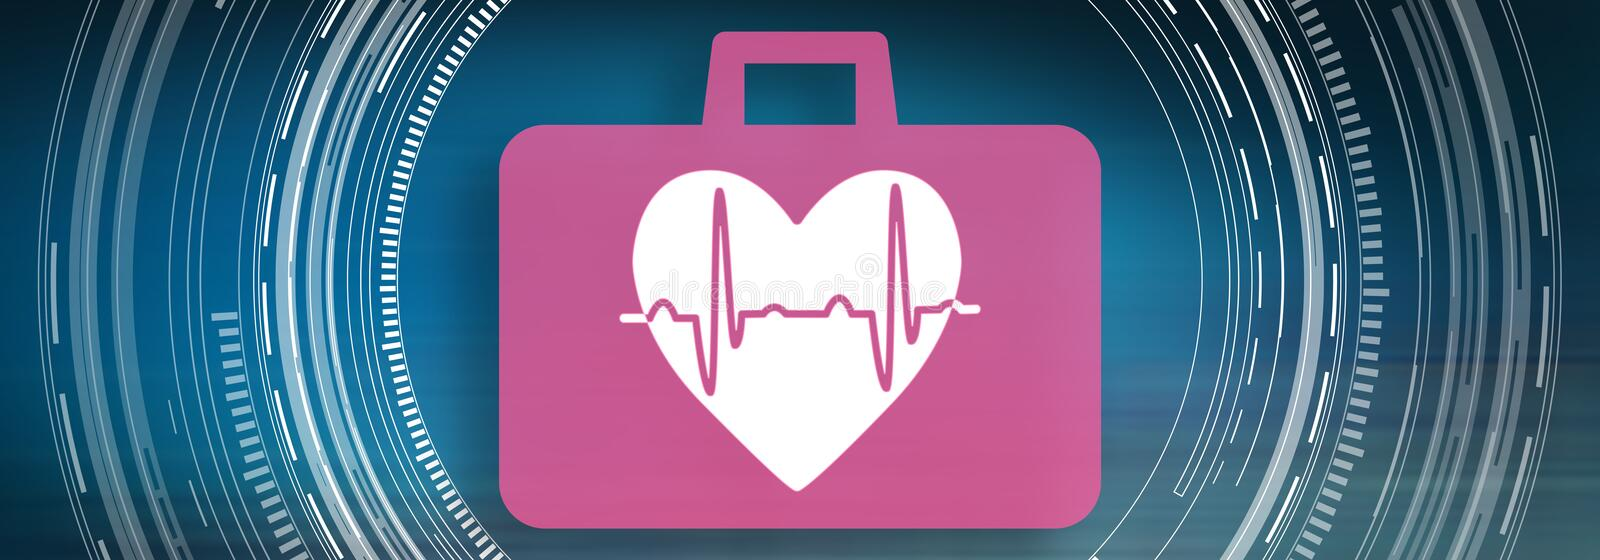 Concept of cardiac emergency vector illustration